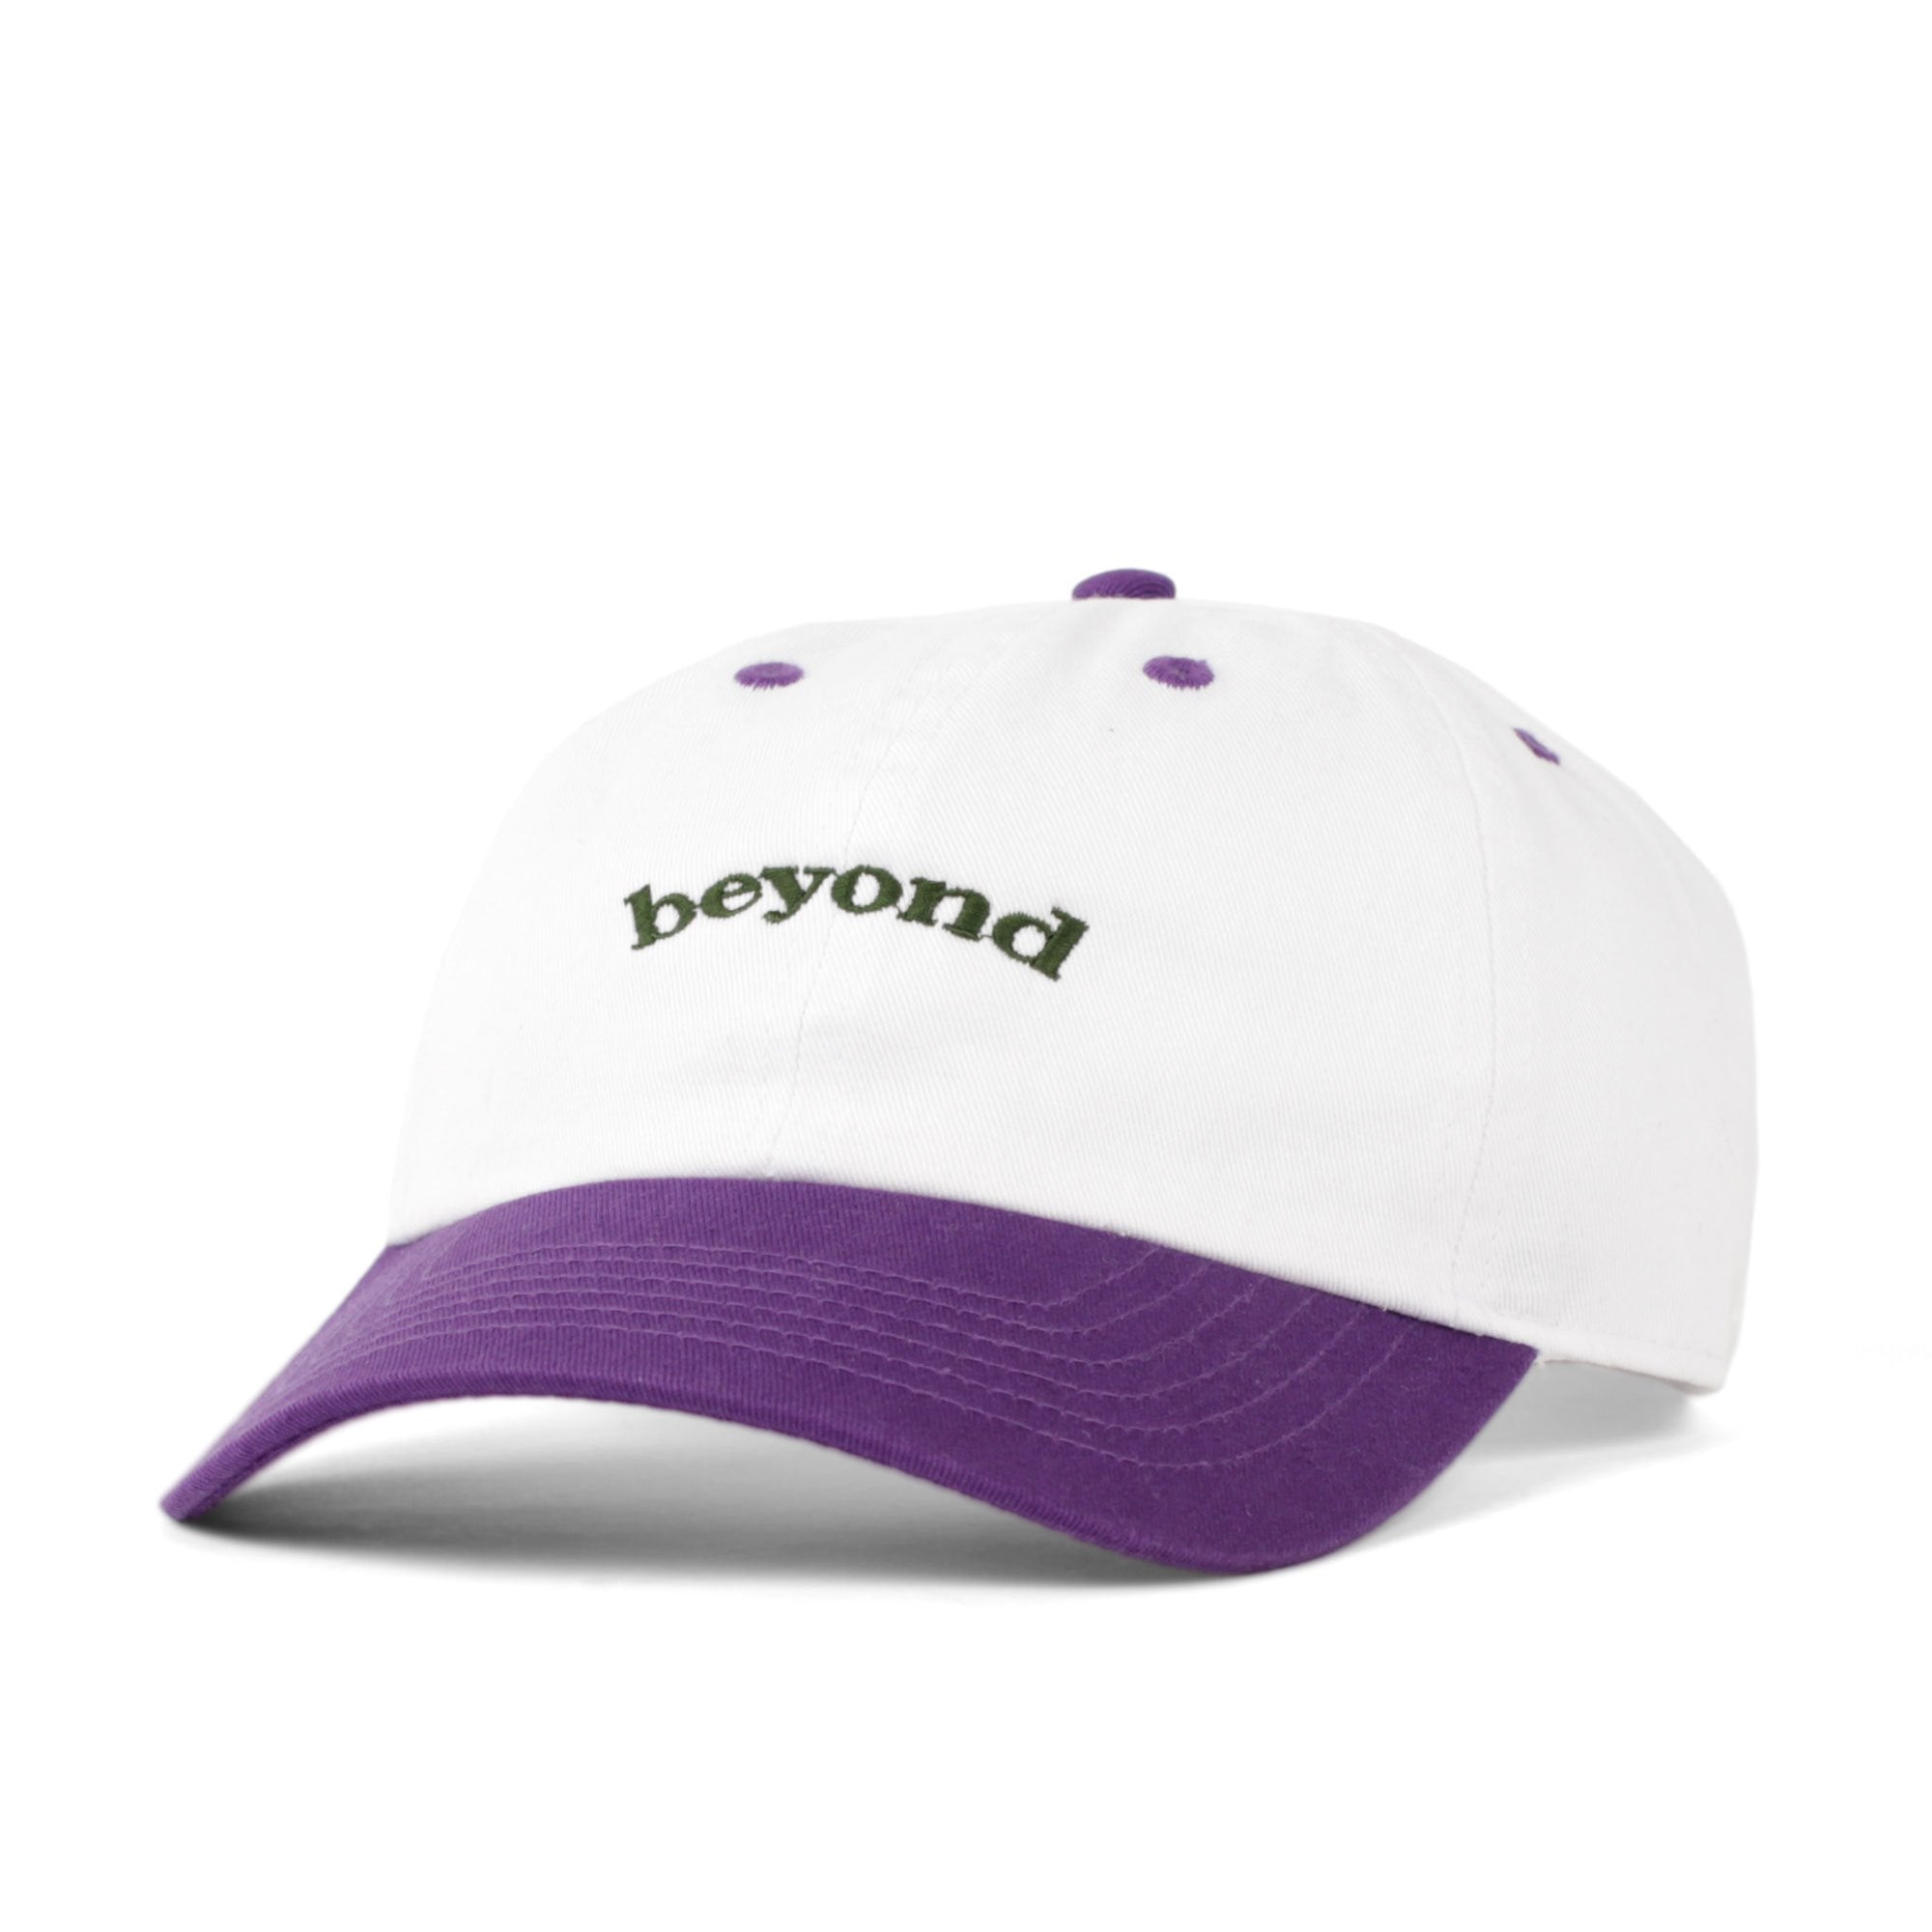 Beyond Two Tone Cap Product Photo #1